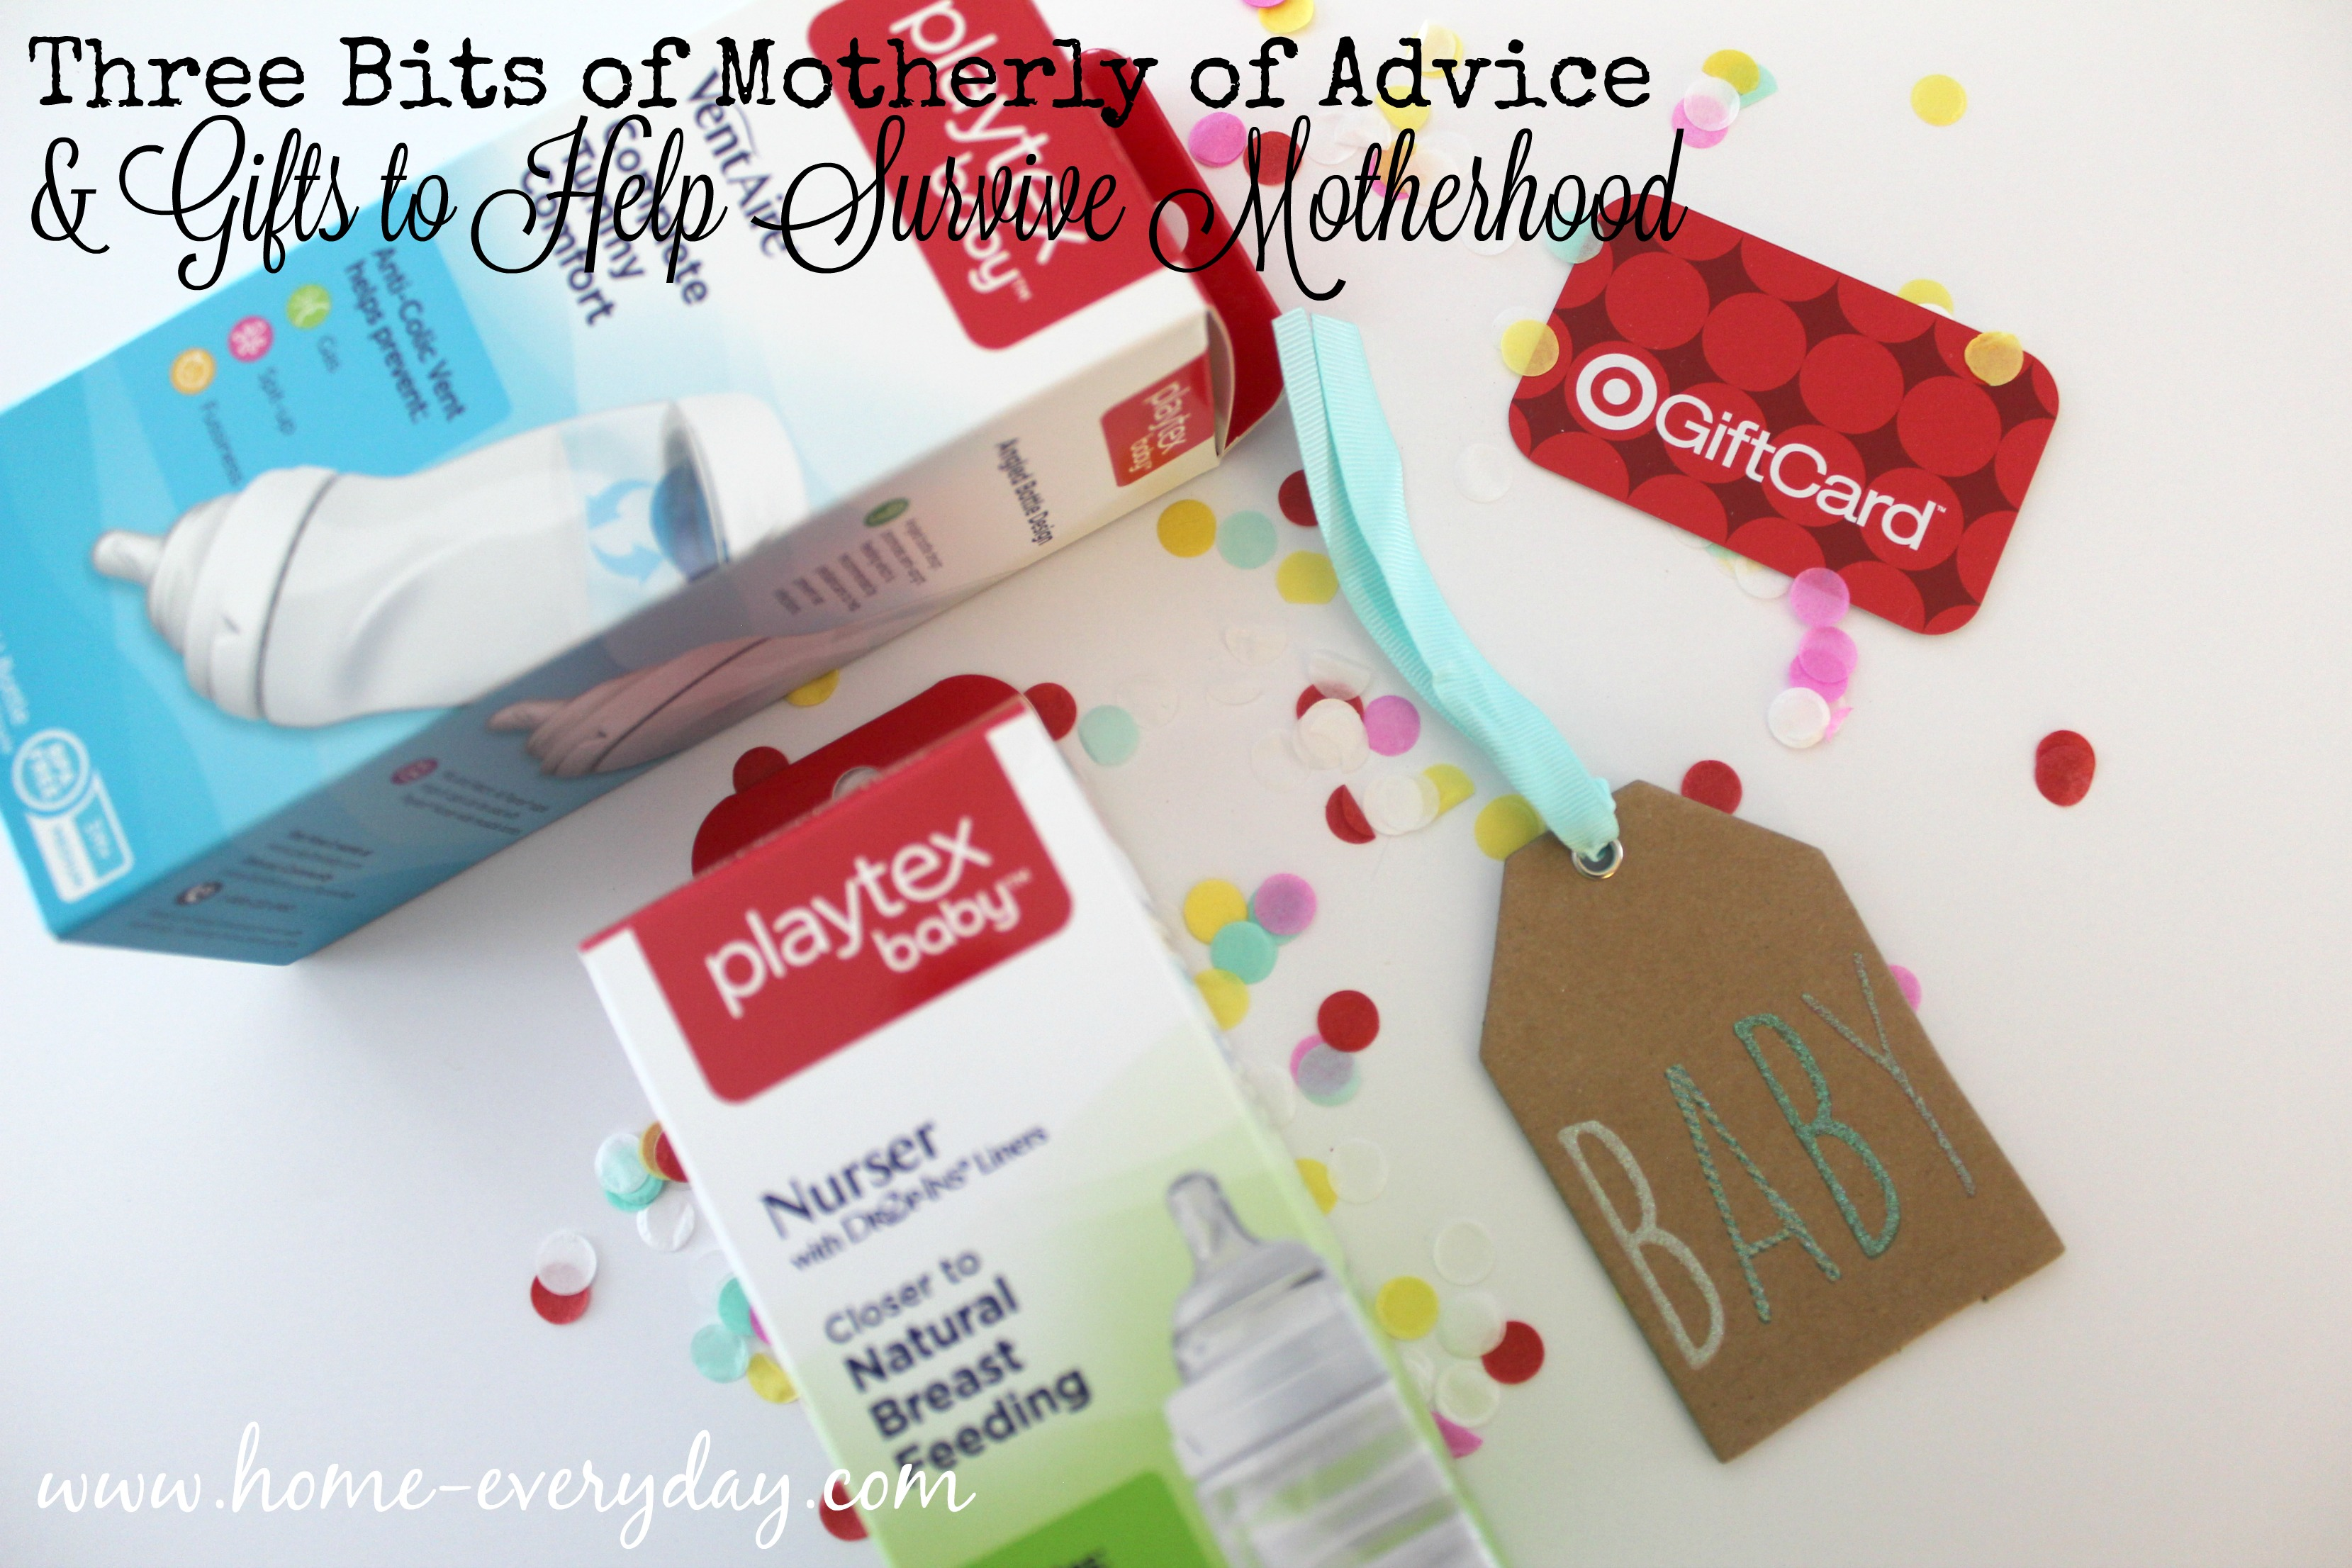 Mother's Advice Gifts 5